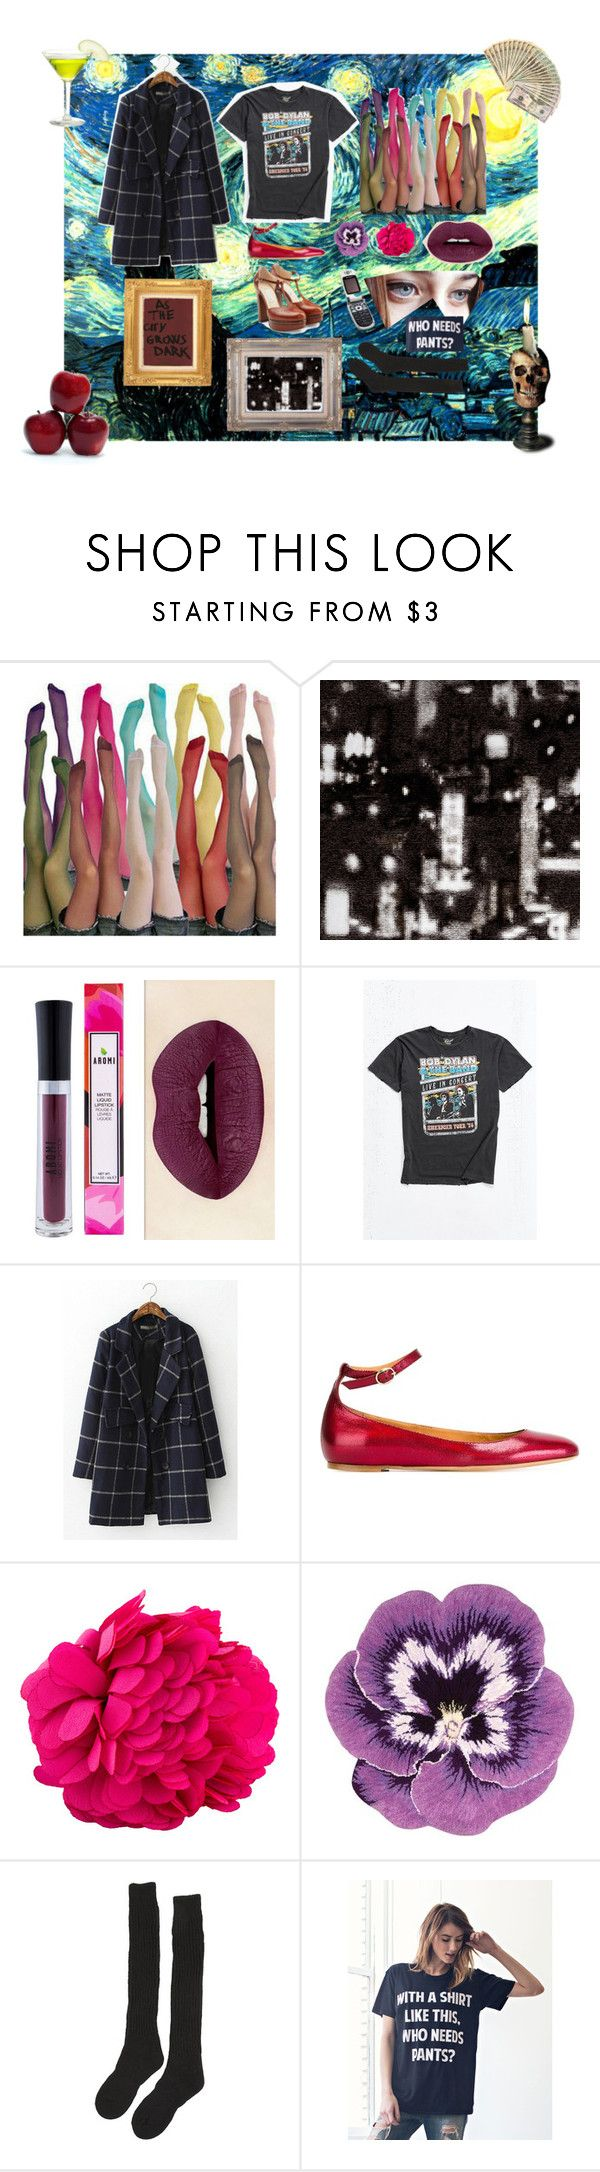 """""""#1: apple martini"""" by roswellufoincident ❤ liked on Polyvore featuring Élitis, Midnight Rider, Isabel Marant, Kate Spade, Nourison, Samantha Holmes, Motorola, L'Autre Chose, DeWitt and weird"""